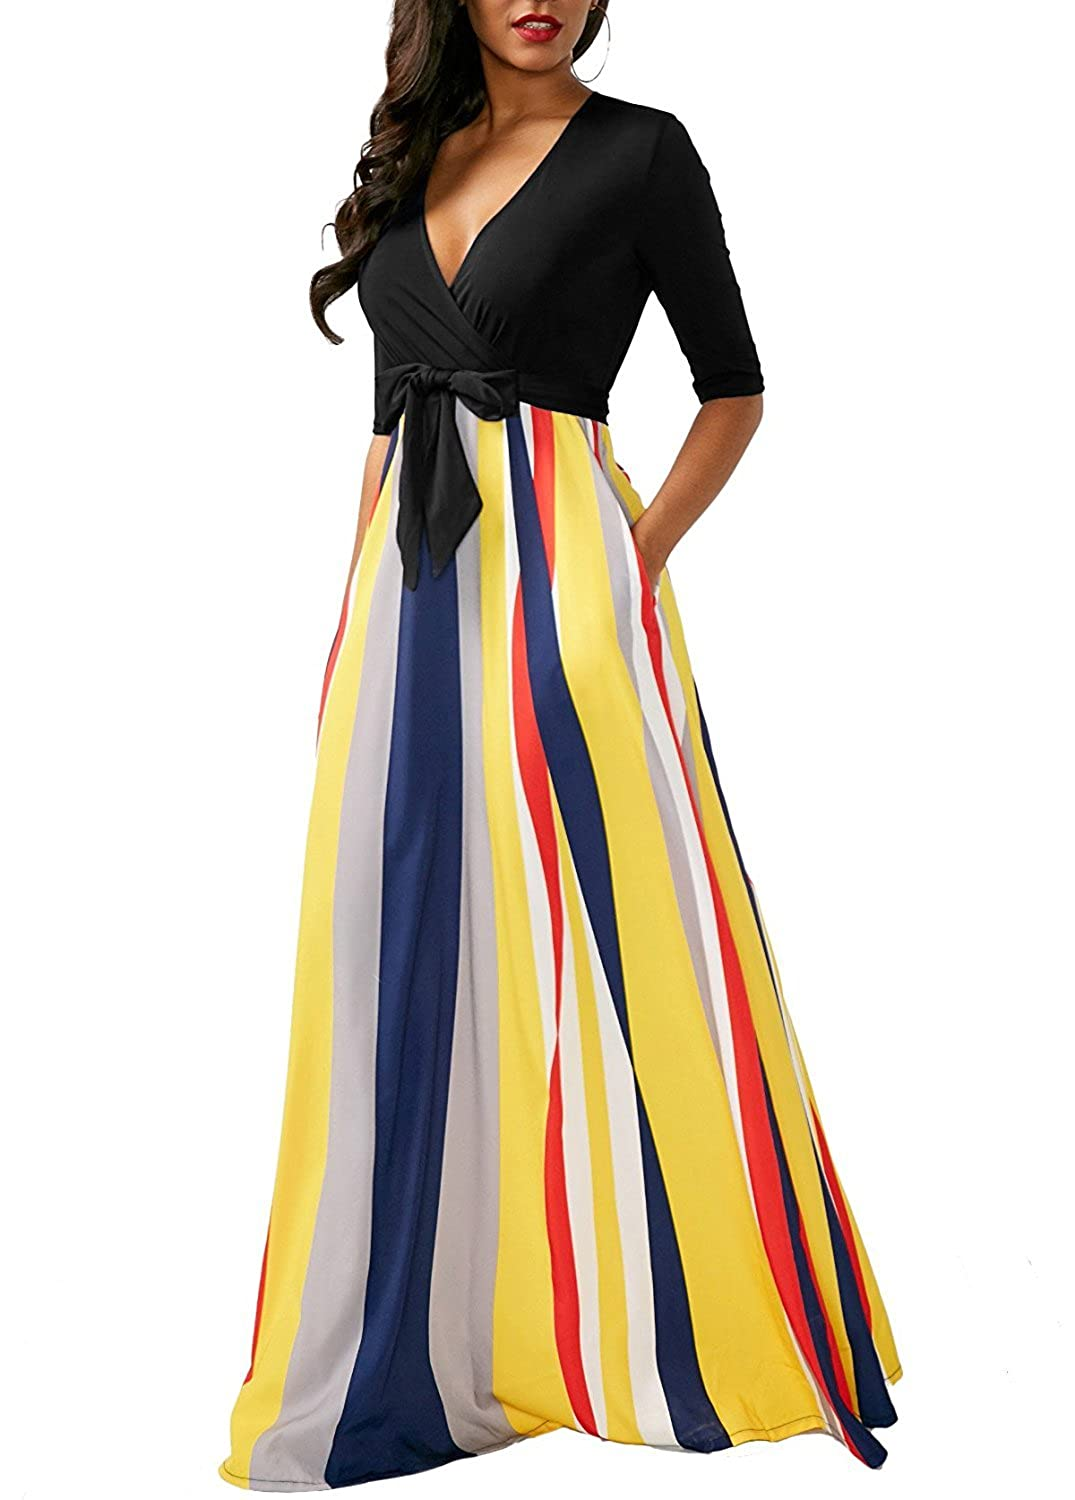 a58539d7313 Hawaiian dresses for women 3 4 sleeve wrap maxi dress stripes long party  dress with pockets. Style Sexy deep V-neck